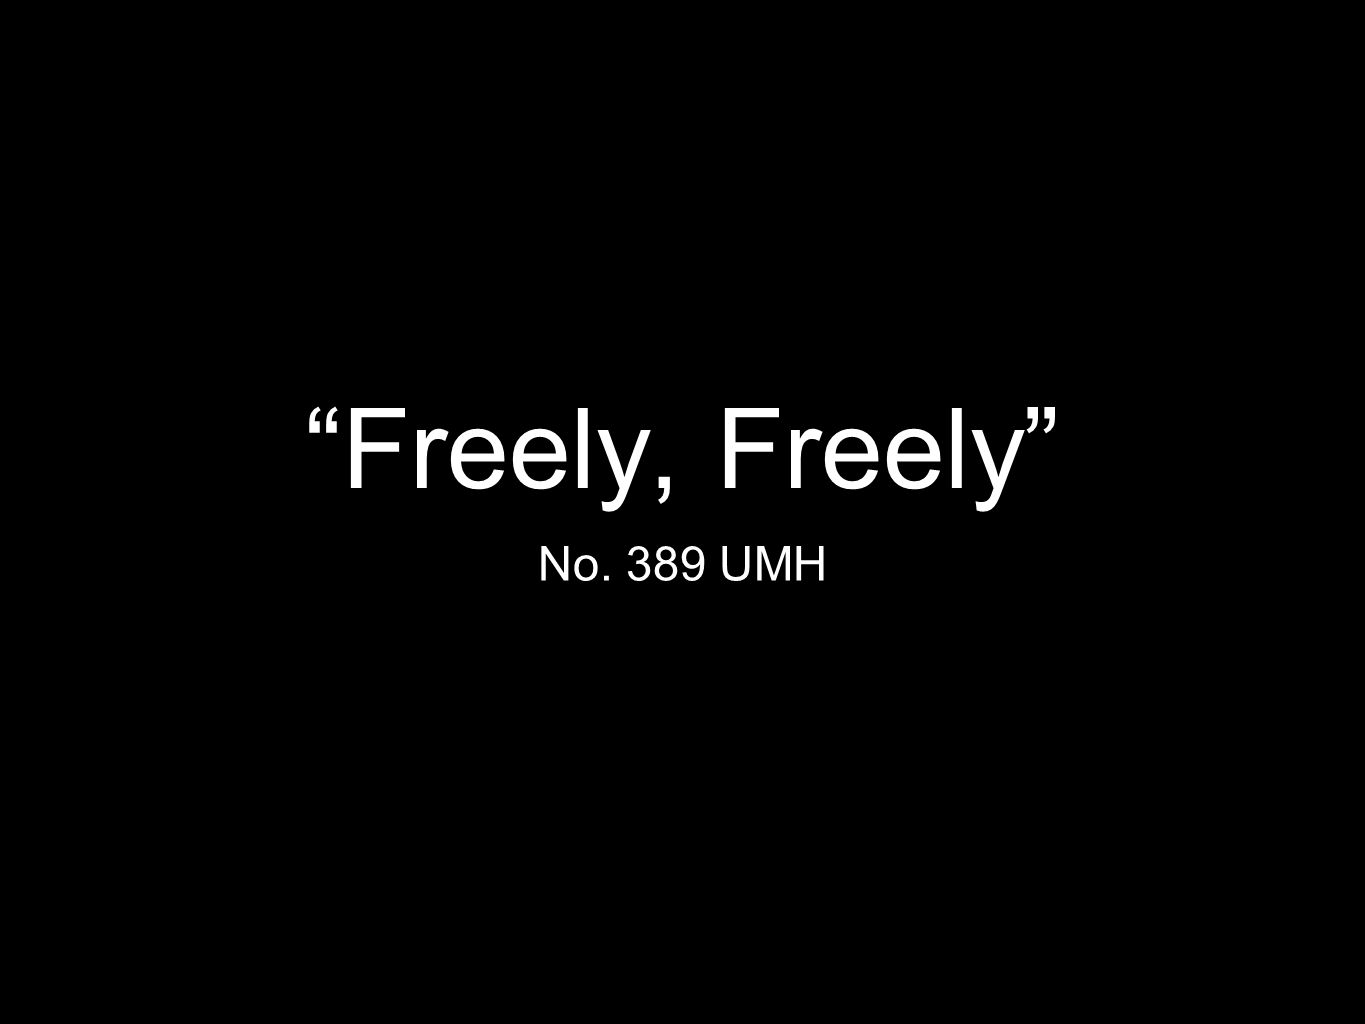 """Freely, Freely"" No. 389 UMH"